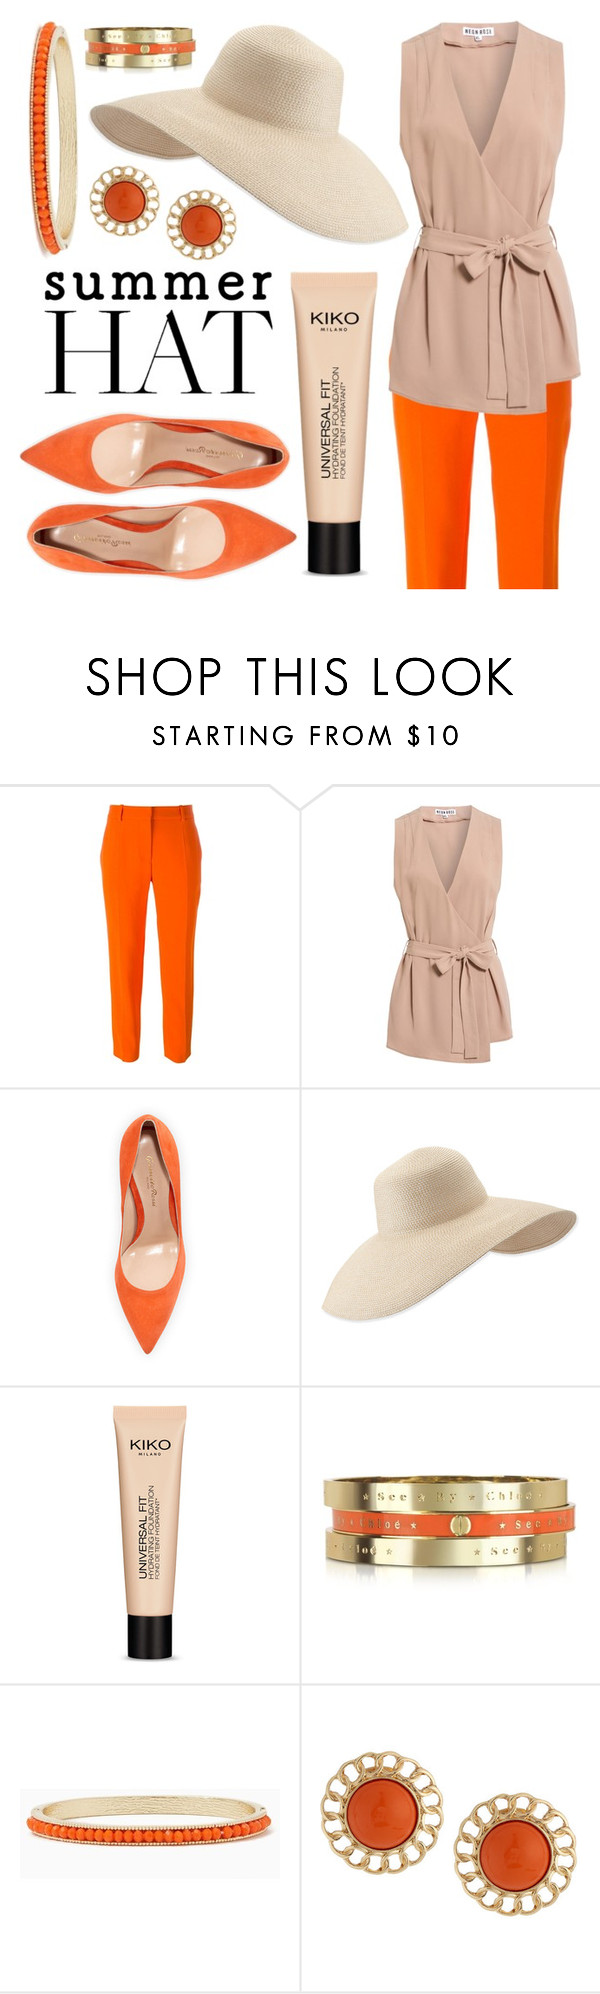 """""""Summer Hat"""" by minchu ❤ liked on Polyvore featuring STELLA McCARTNEY, Gianvito Rossi, Eric Javits, See by Chloé, Kenneth Jay Lane and summerhat"""